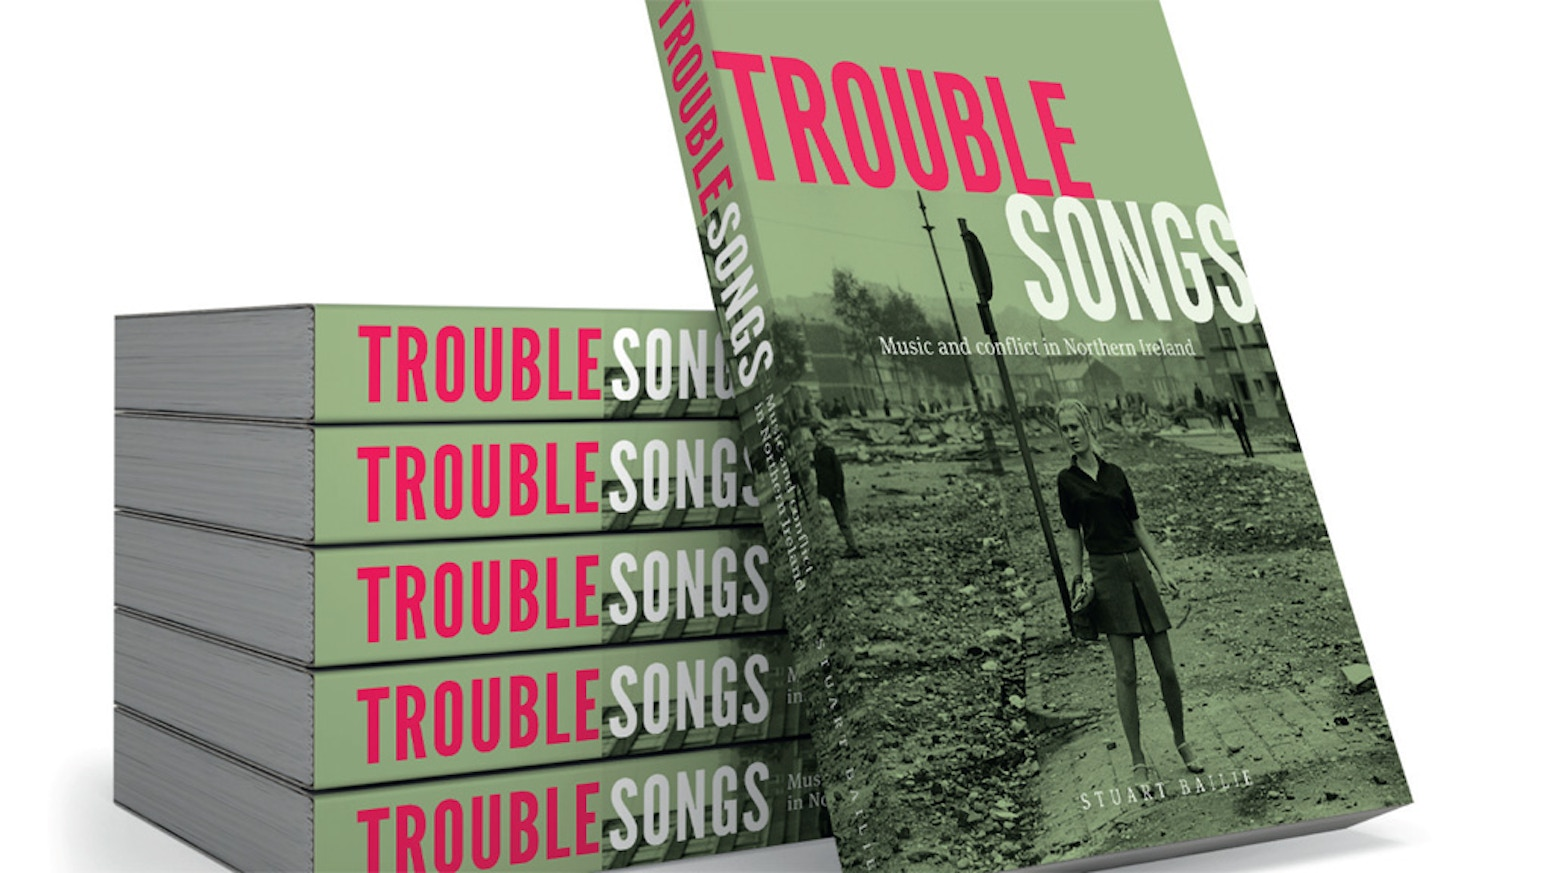 Now available on www.troublesongs.com - Trouble Songs, the story of music's role as a persuader, agitator and peacemaker during conflicted times in Northern Ireland.